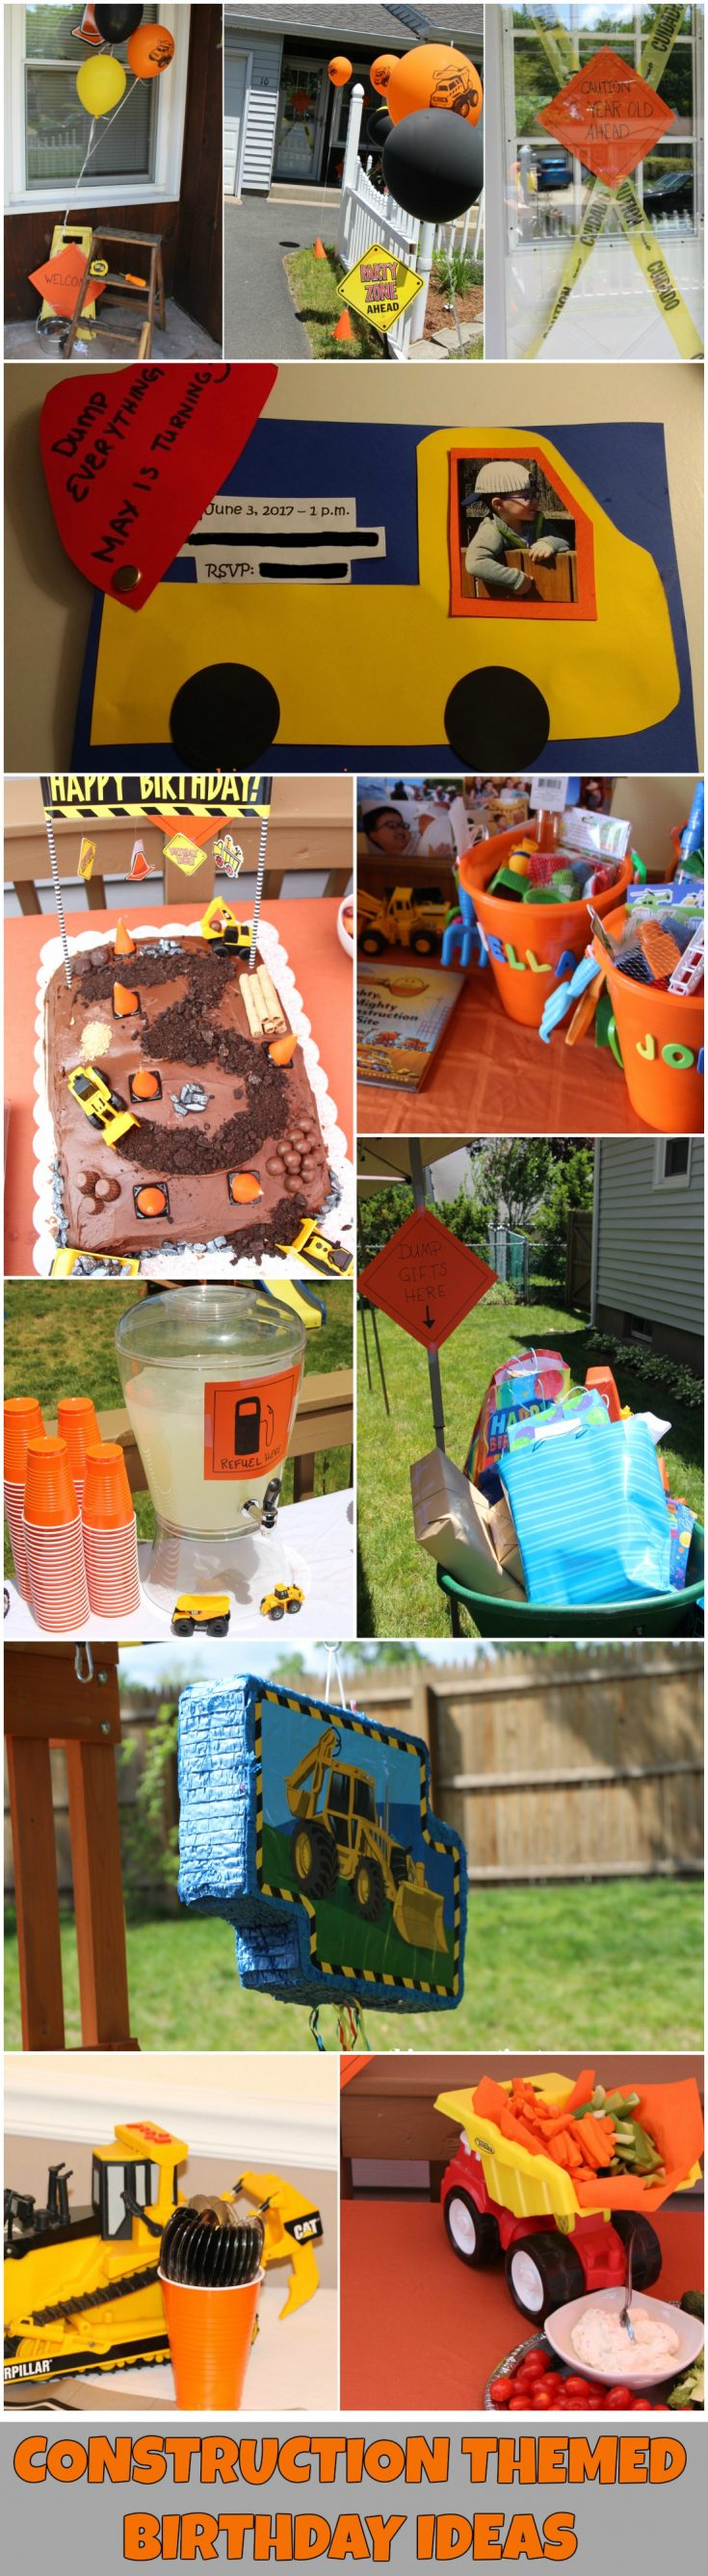 DUMP EVERYTHING! Plan a Construction Themed Birthday Party with This Connecticut Mom! Tips and Ideas for a construction themed party, including decoration ideas, favors, cake and more!